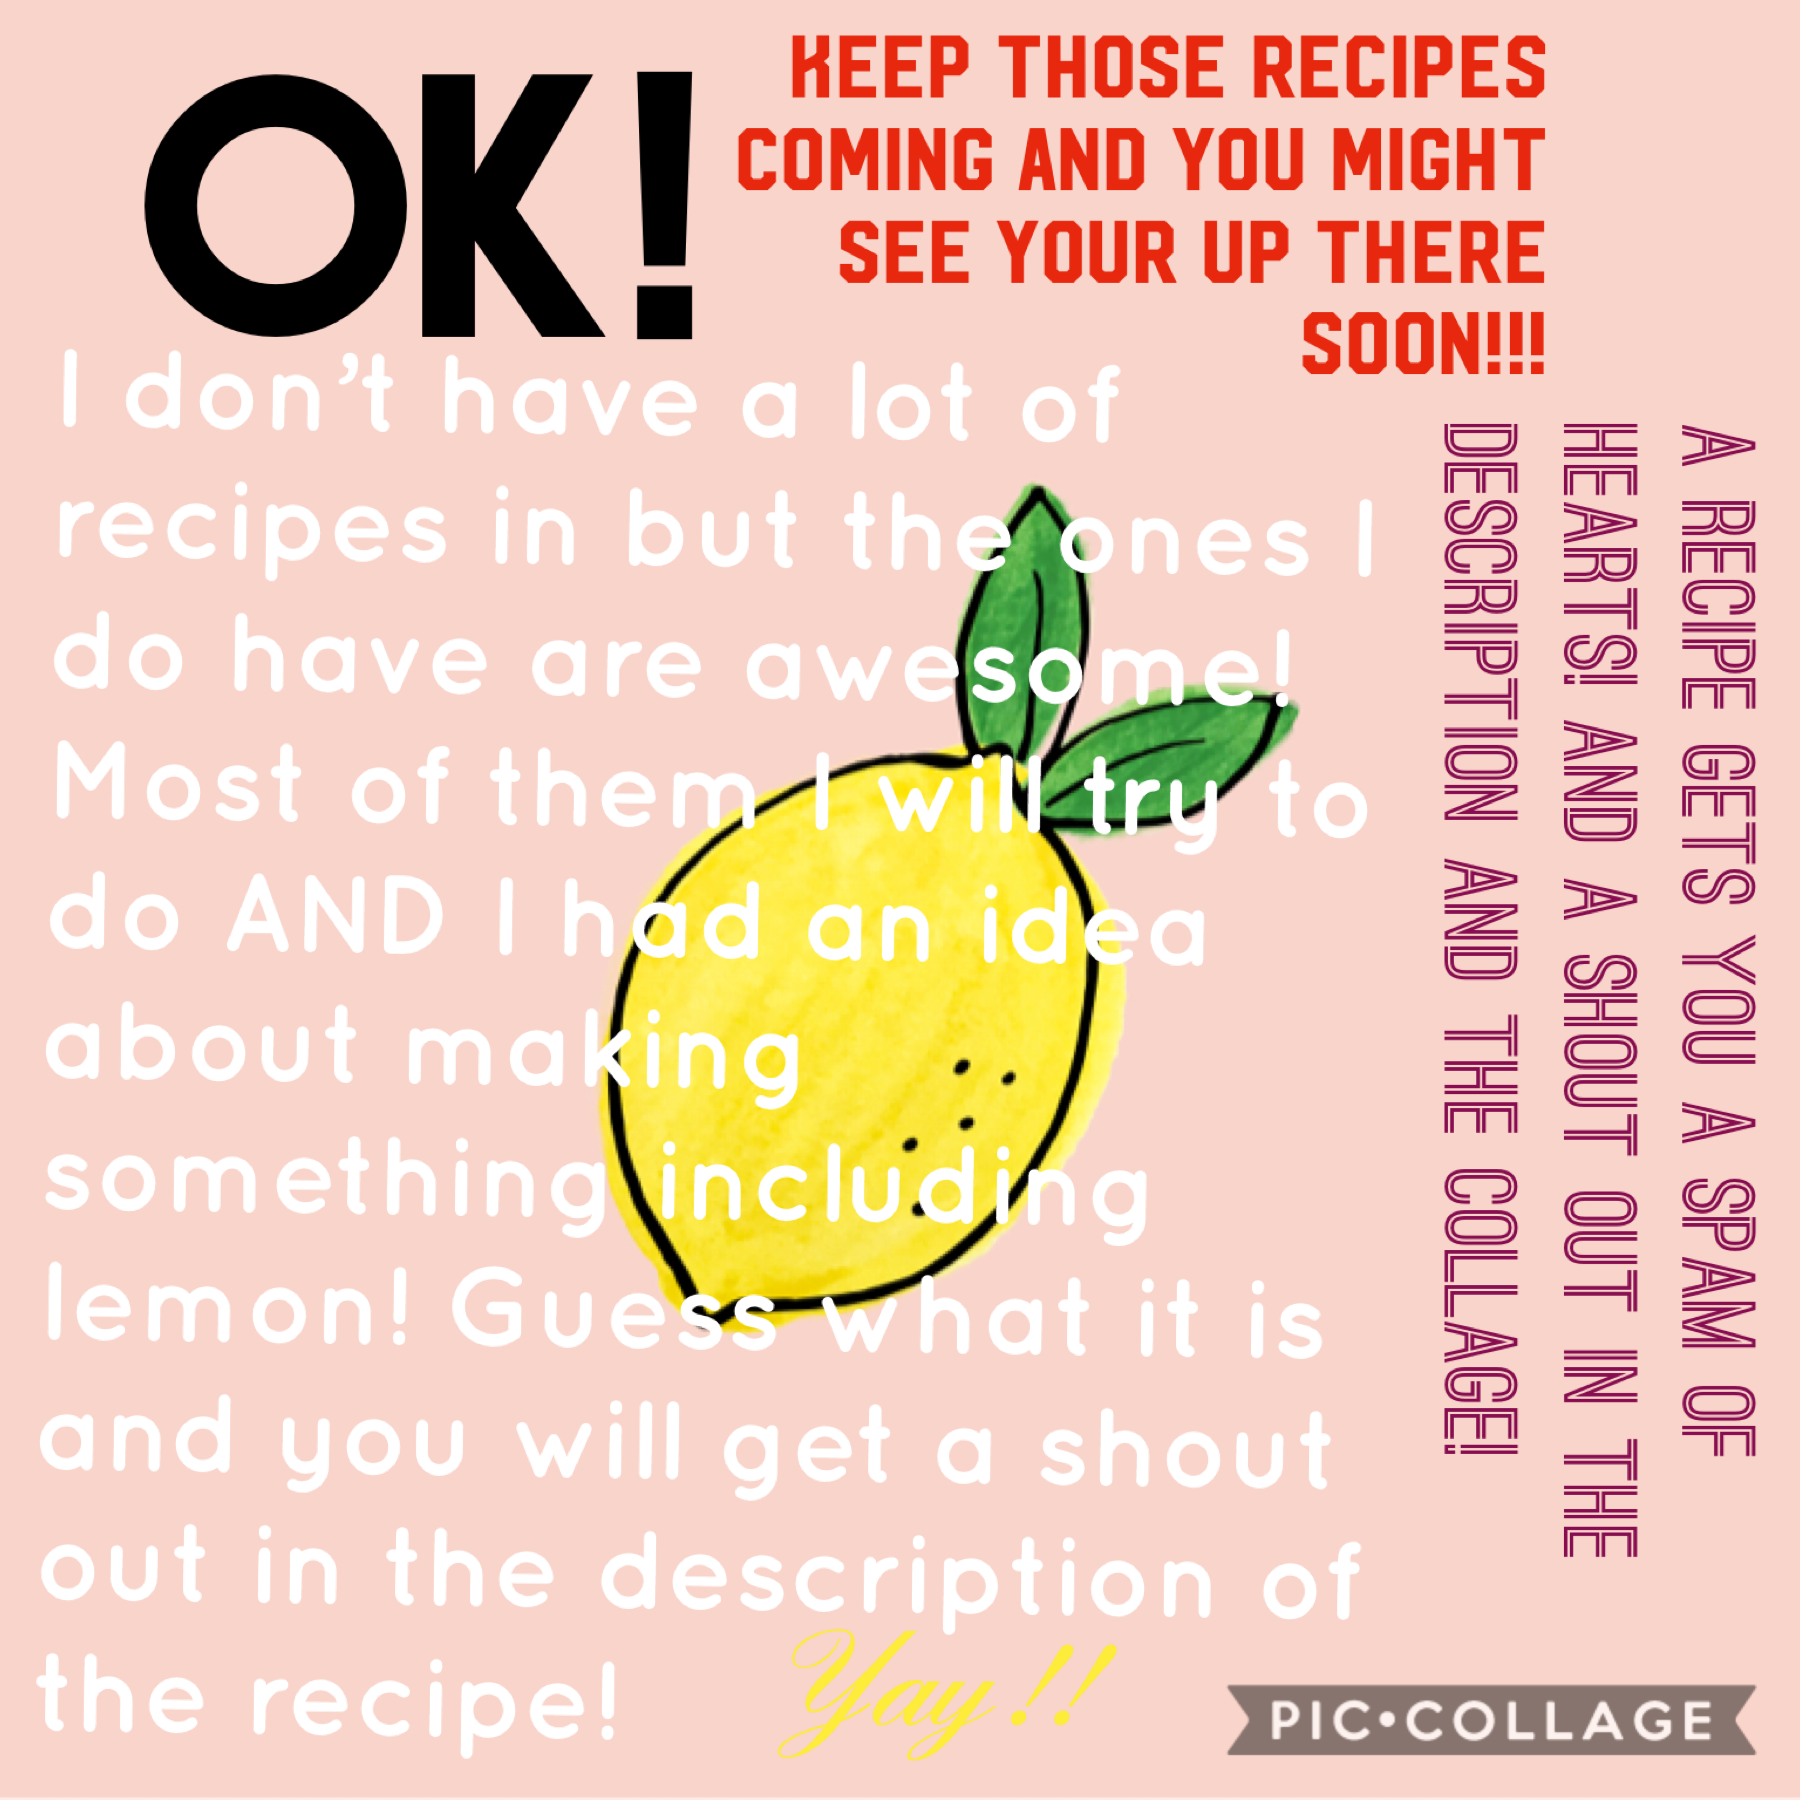 Please please please give me some recipes! Thank you so much to the people who already have! And it works best when it's a remix! :D